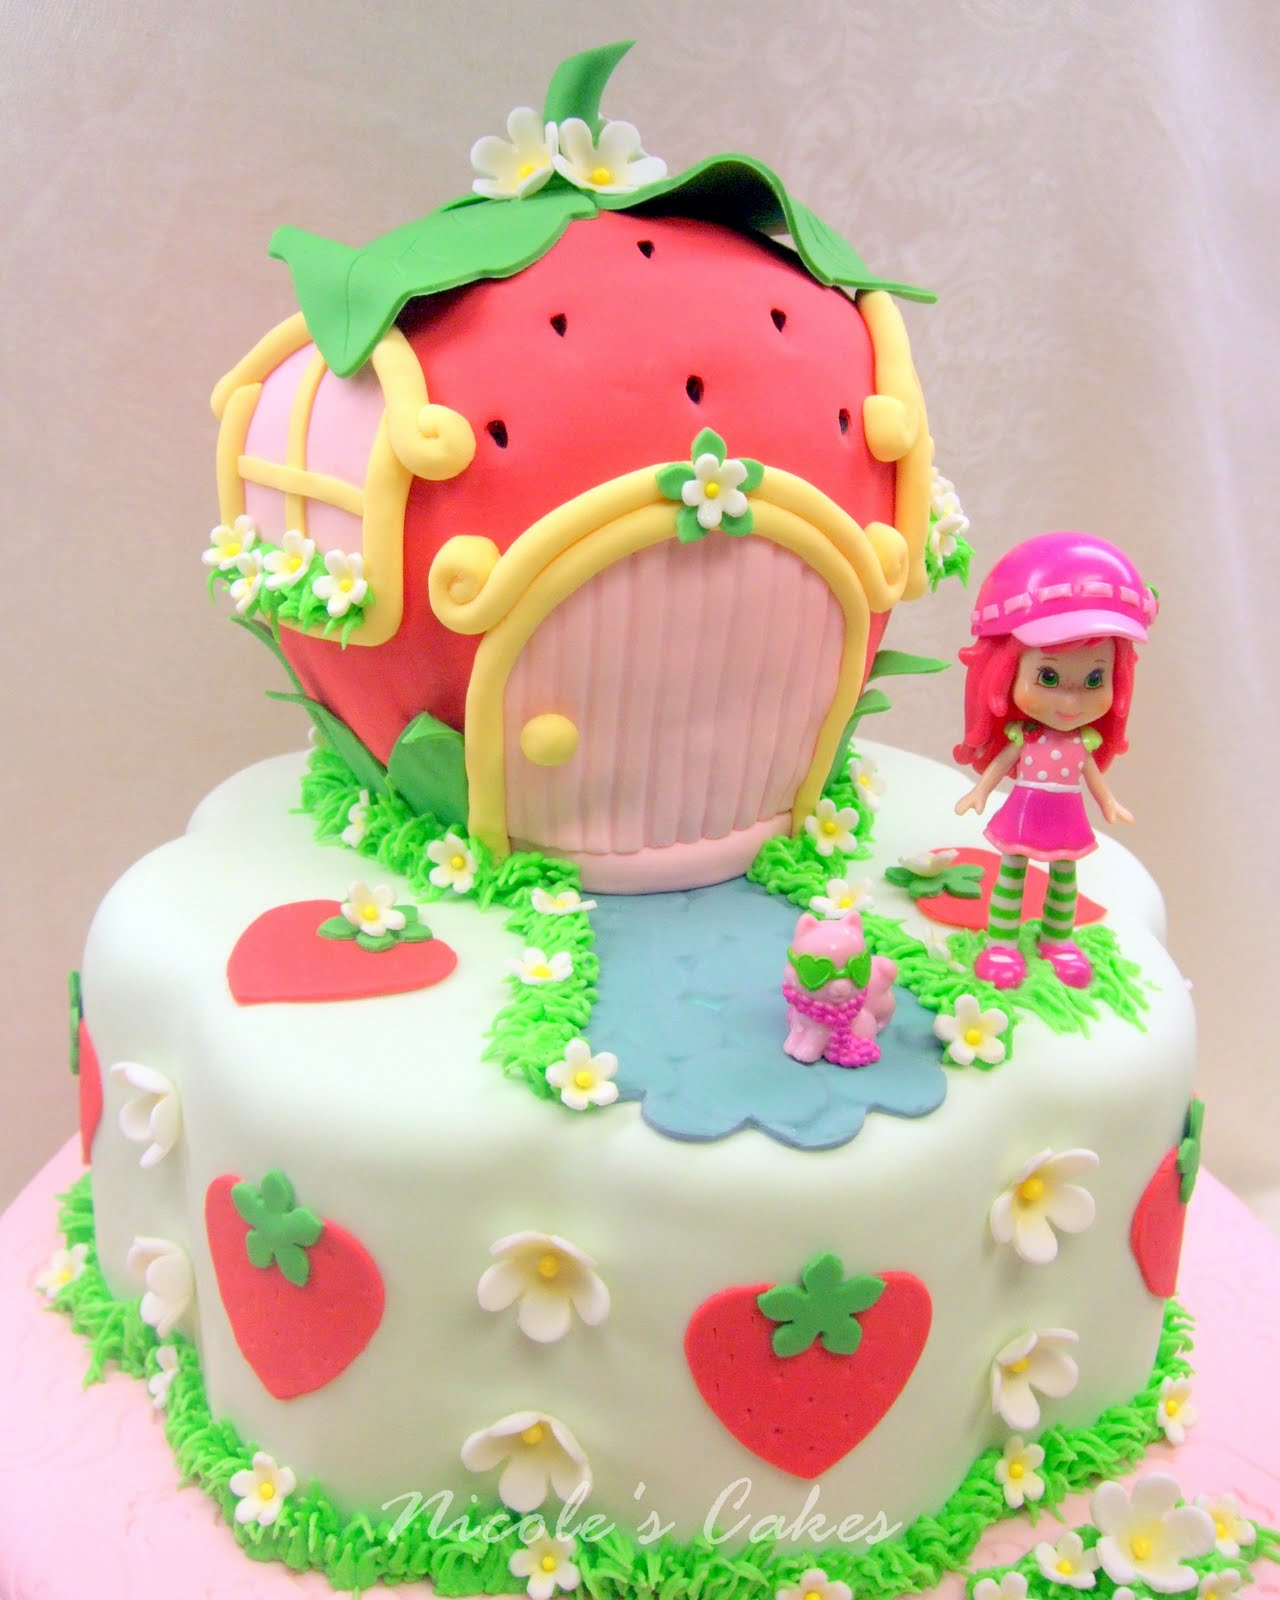 On Birthday Cakes A Berry Beautiful Strawberry Shortcake Birthday Cake